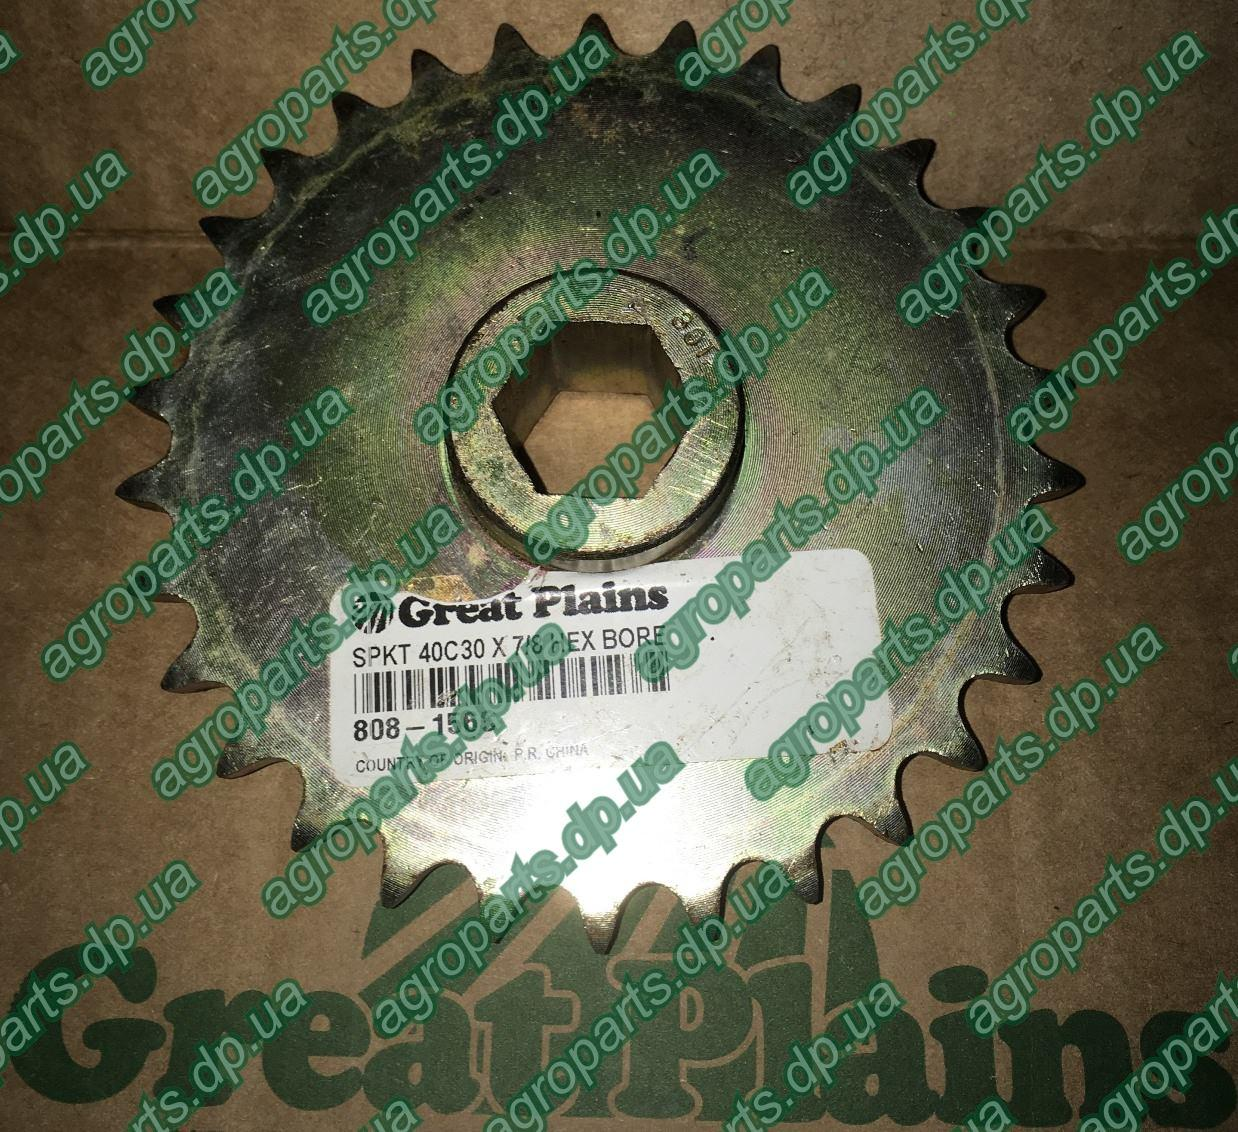 "Звёздочка 808-156C SPROCKET 30 Tooth HEX BORE 7/8"" Great Plains з/ч 808-156 Грейт Плейнз"